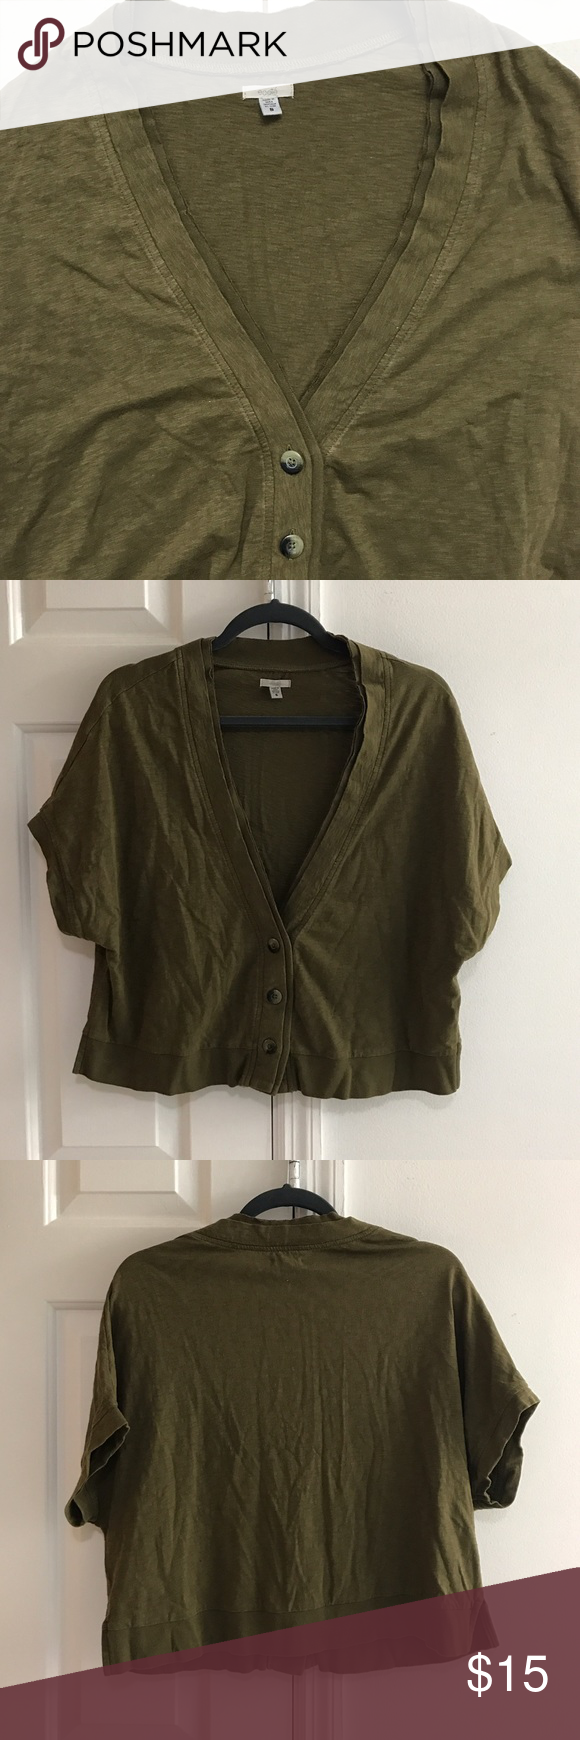 UO olive green cardigan Olive green short sleeve cardigan from ...